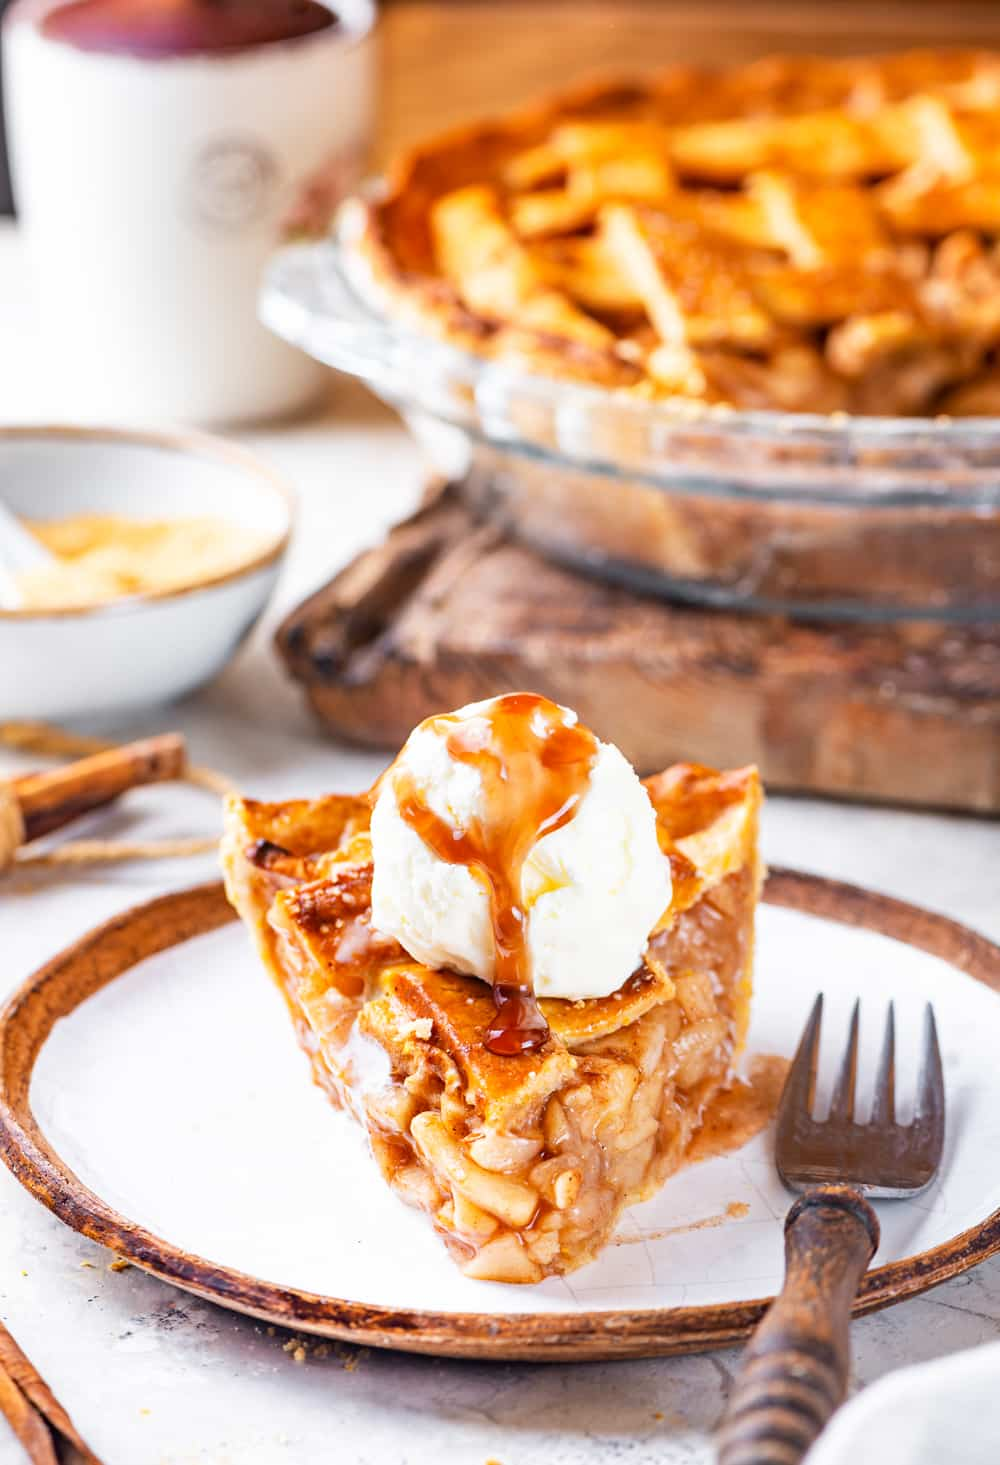 A front view of a piece of apple pie with a scoop of vanilla ice cream on top with a caramel sauce drizzled over it. The piece of pie is on a white plate and a fork is to the right of the piece of pie. A vegan apple pie in a glass pie dish on a wooden cutting board is behind the plate. A cup of coffee is to the left of the pie. It is all set on a grey counter.